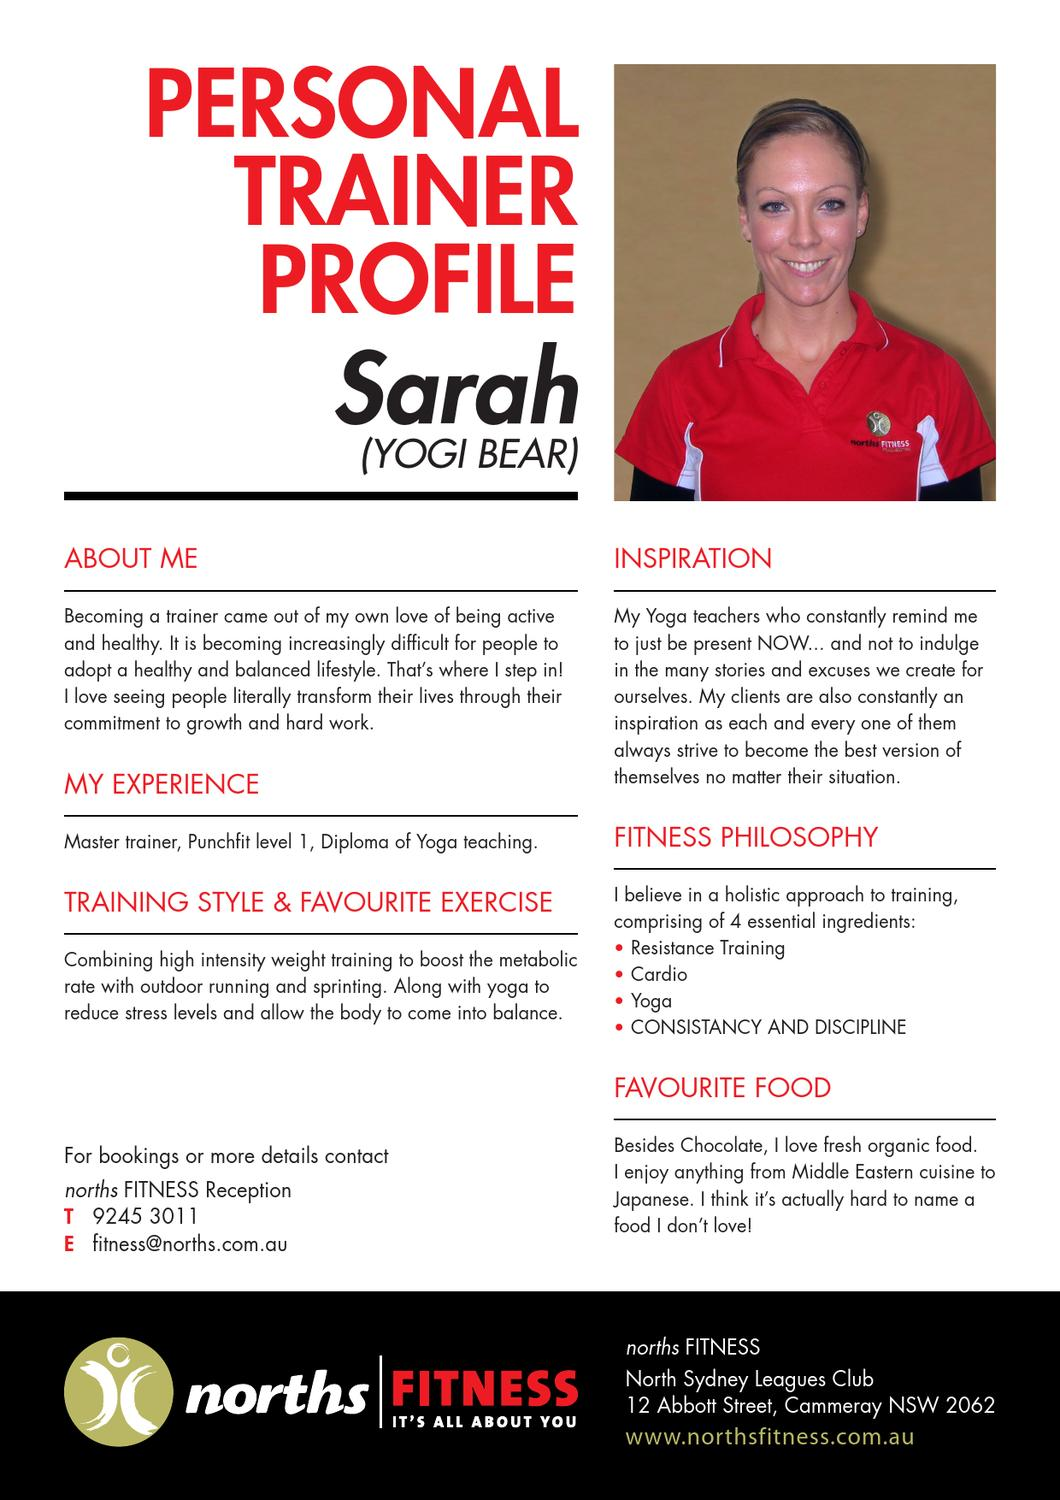 norths personal trainer profiles by north sydney leagues